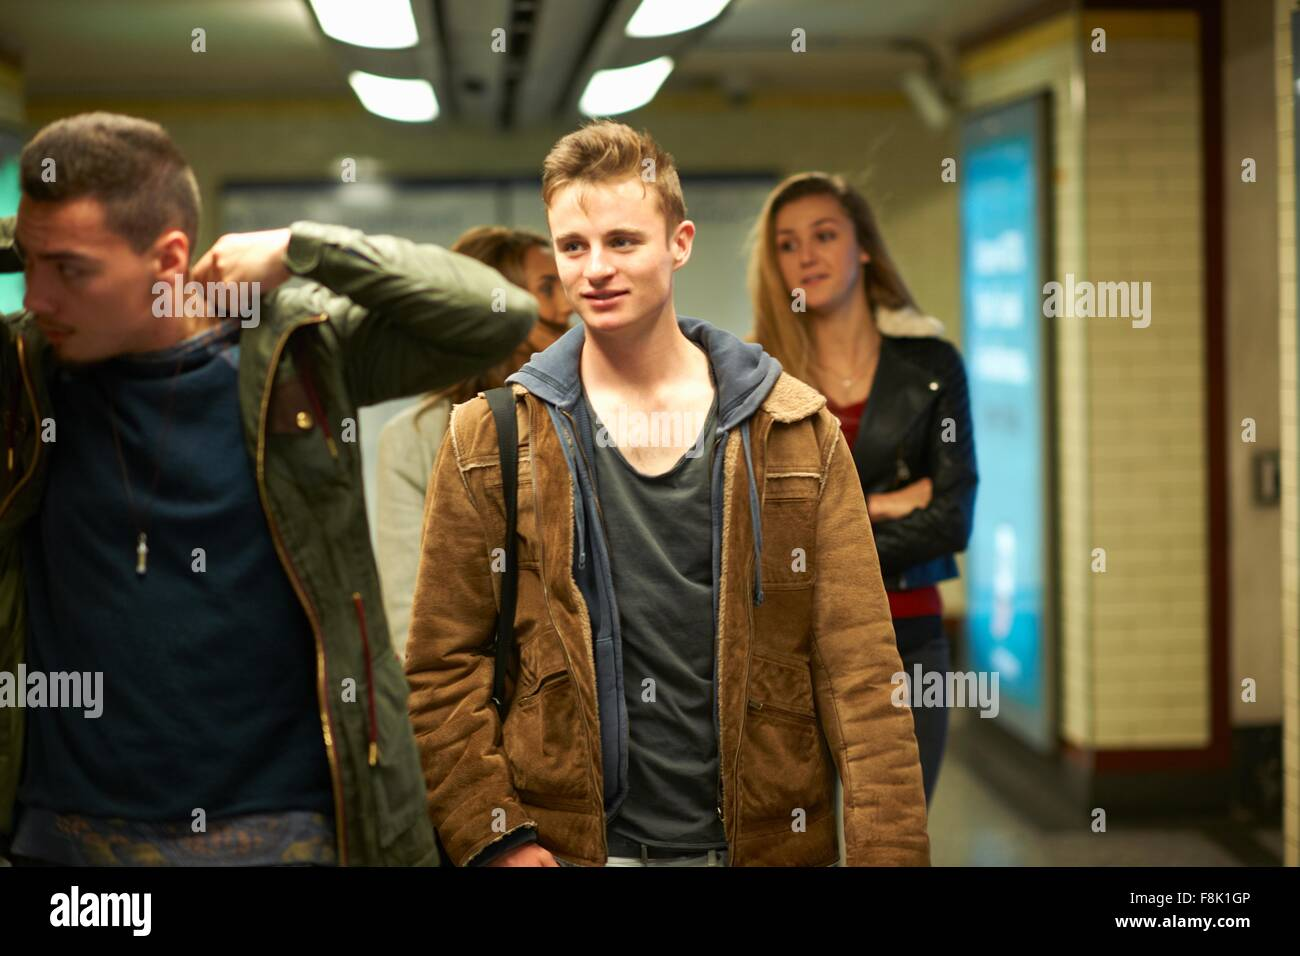 Four young adult friends walking through London underground station, London, UK Stock Foto